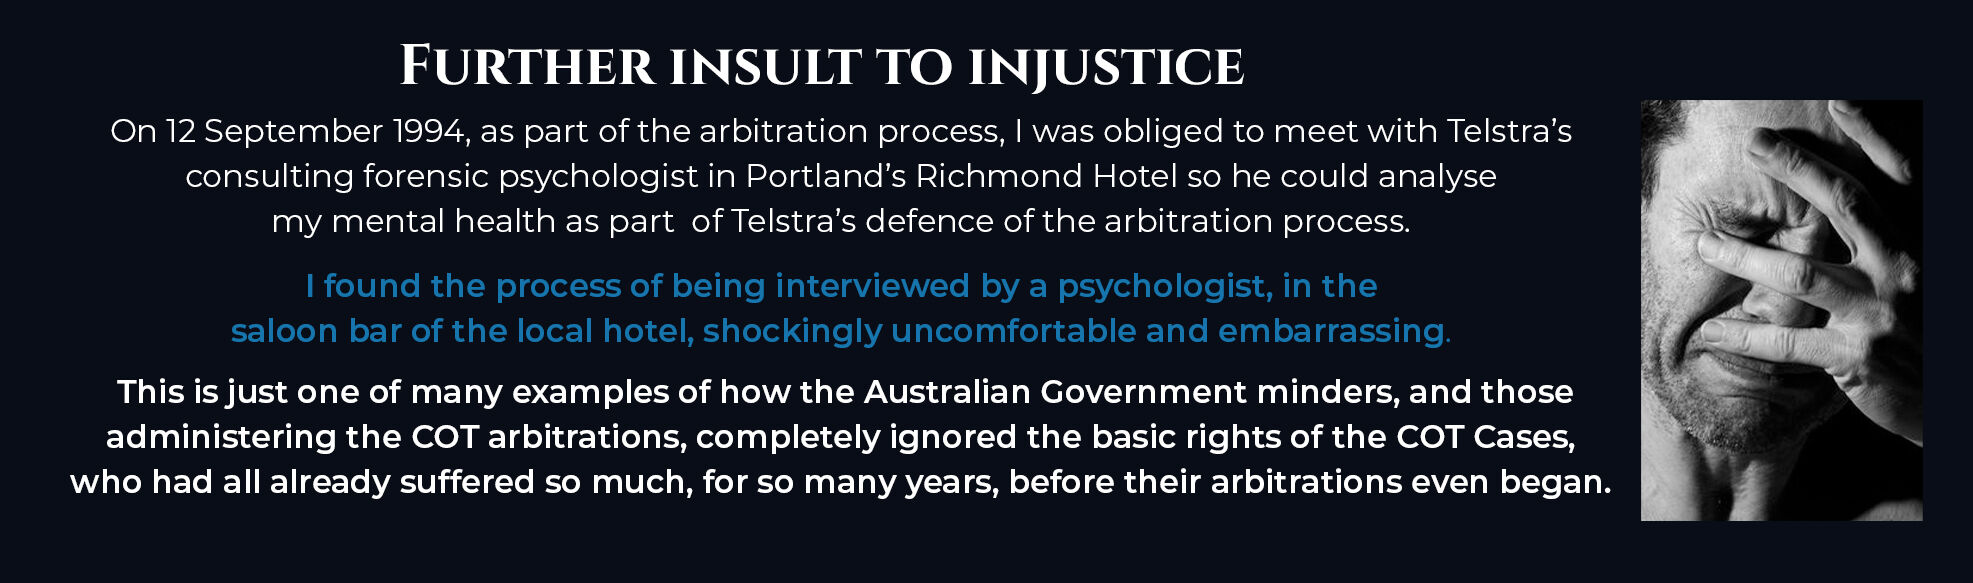 Absent Justice - Further Insult to Injustice